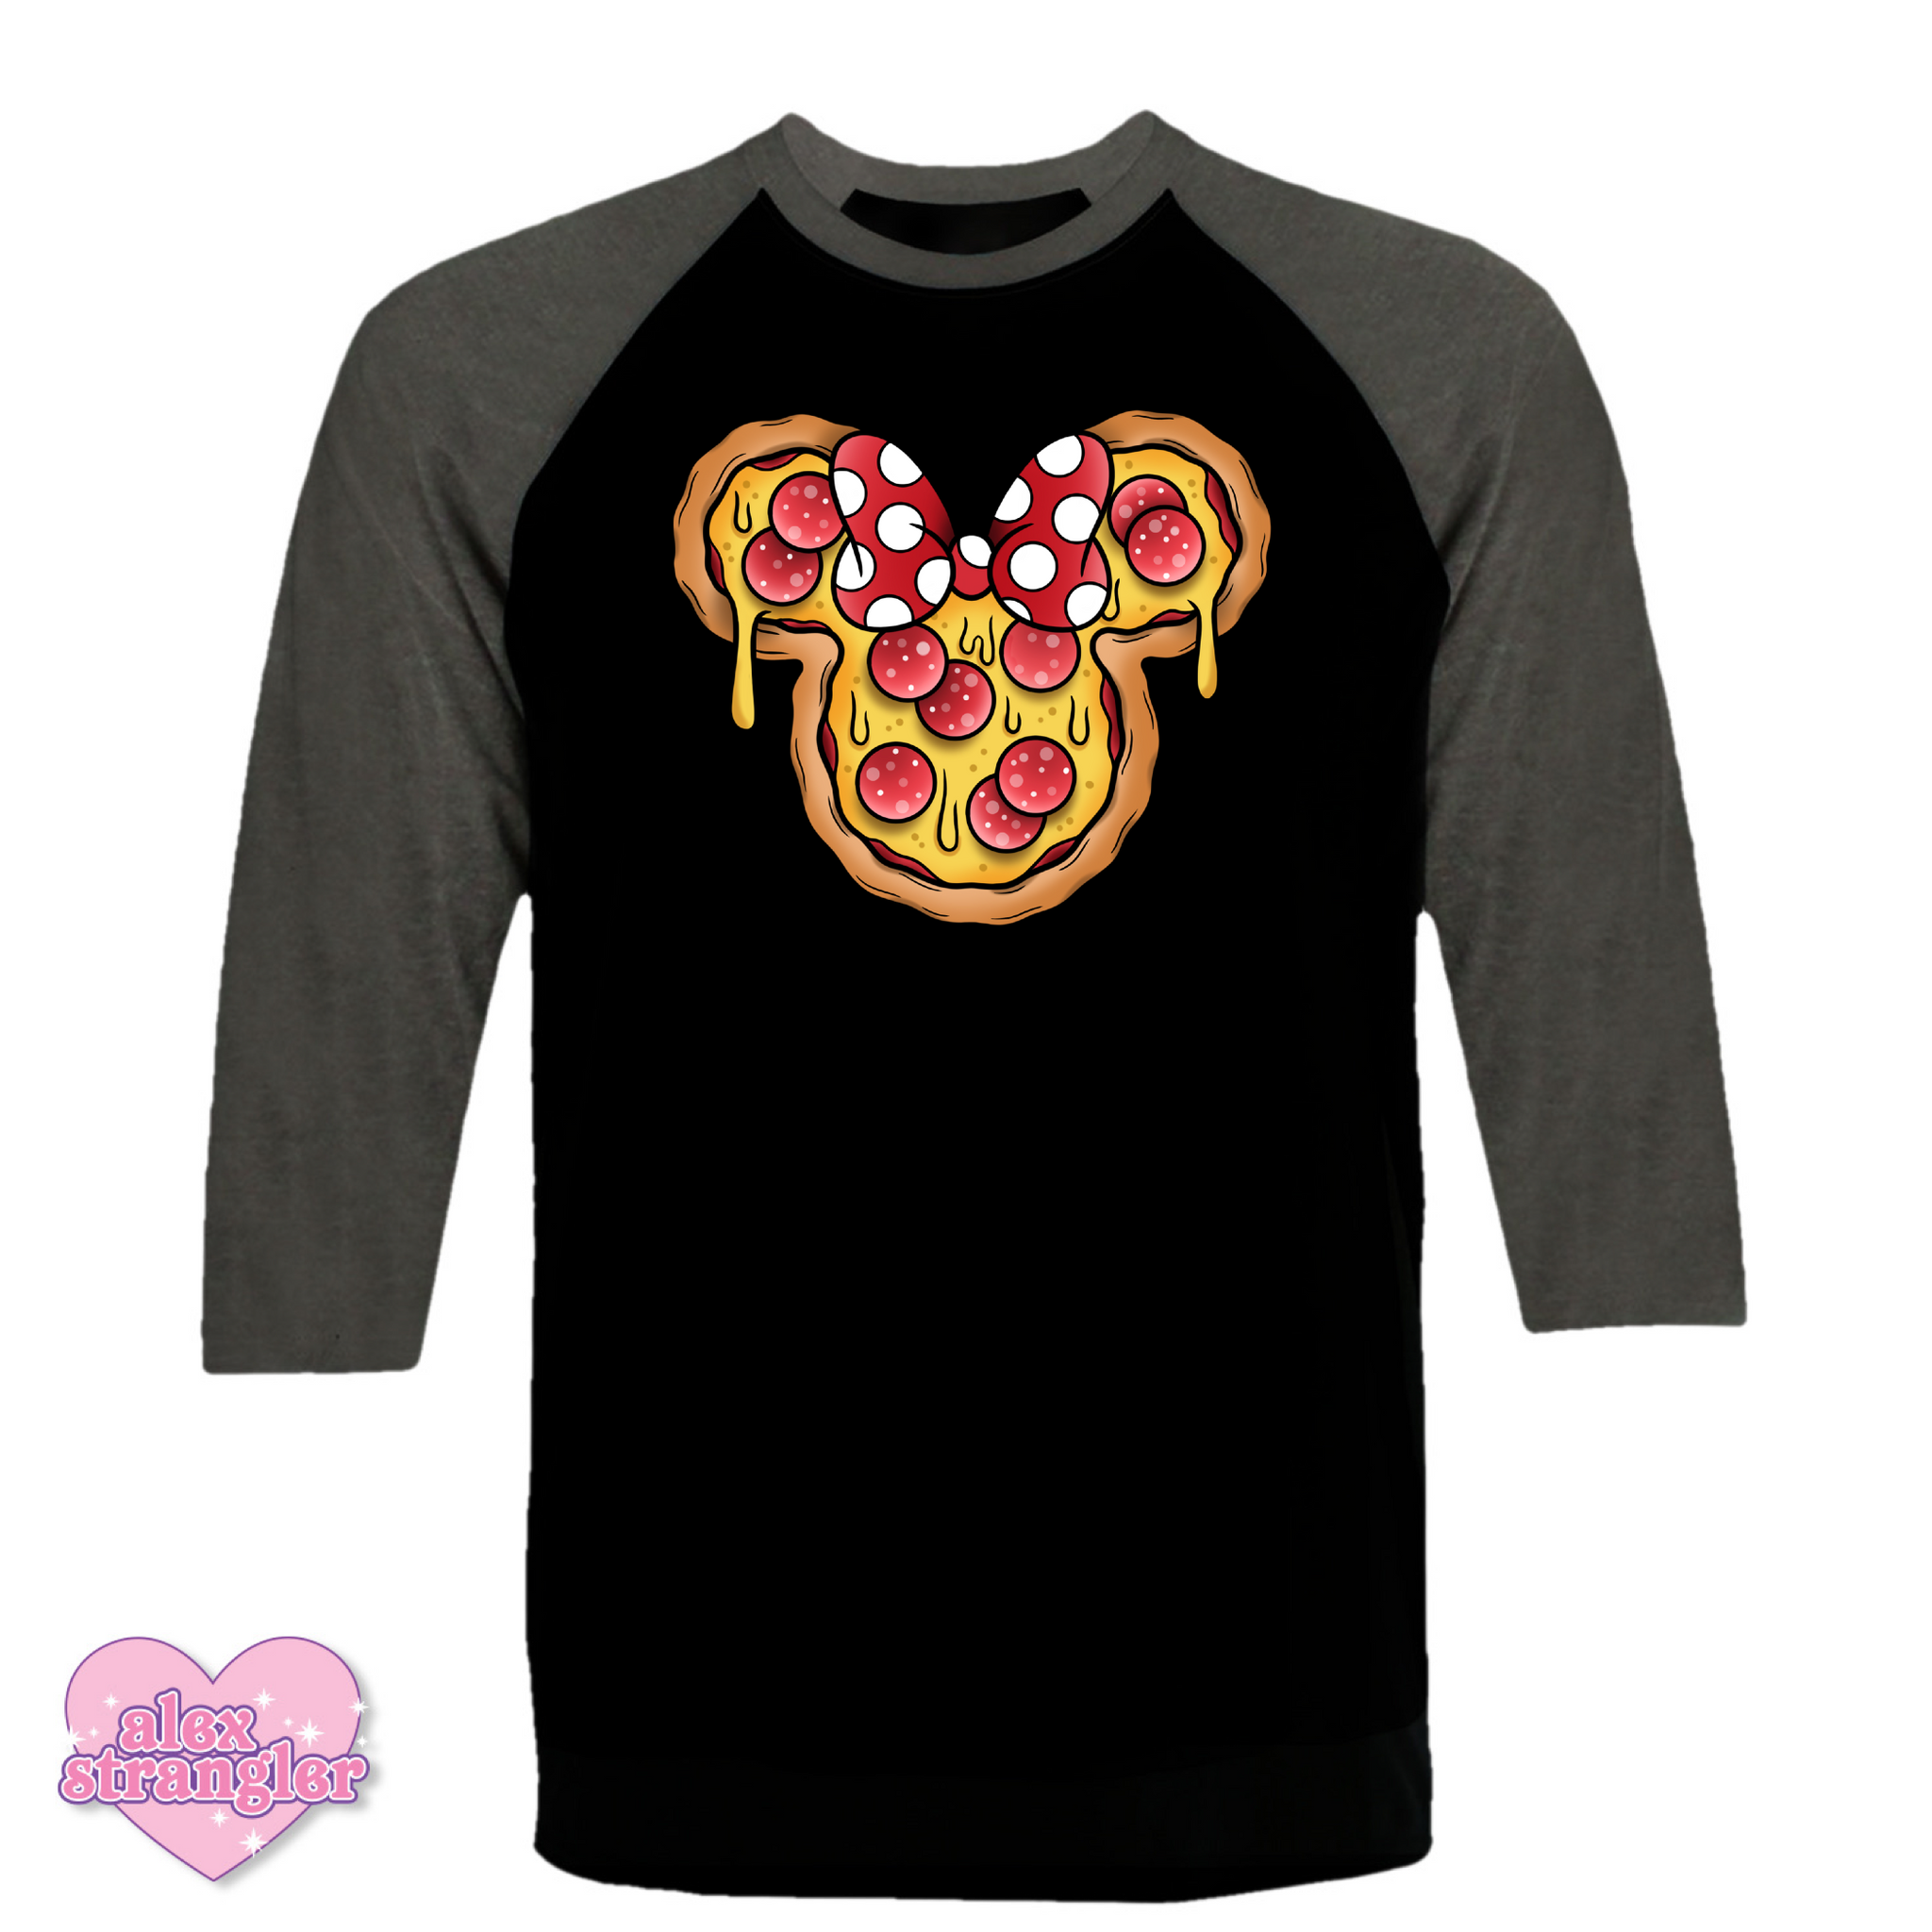 Mrs. Pizza Mouse - Men's/Unisex Raglan